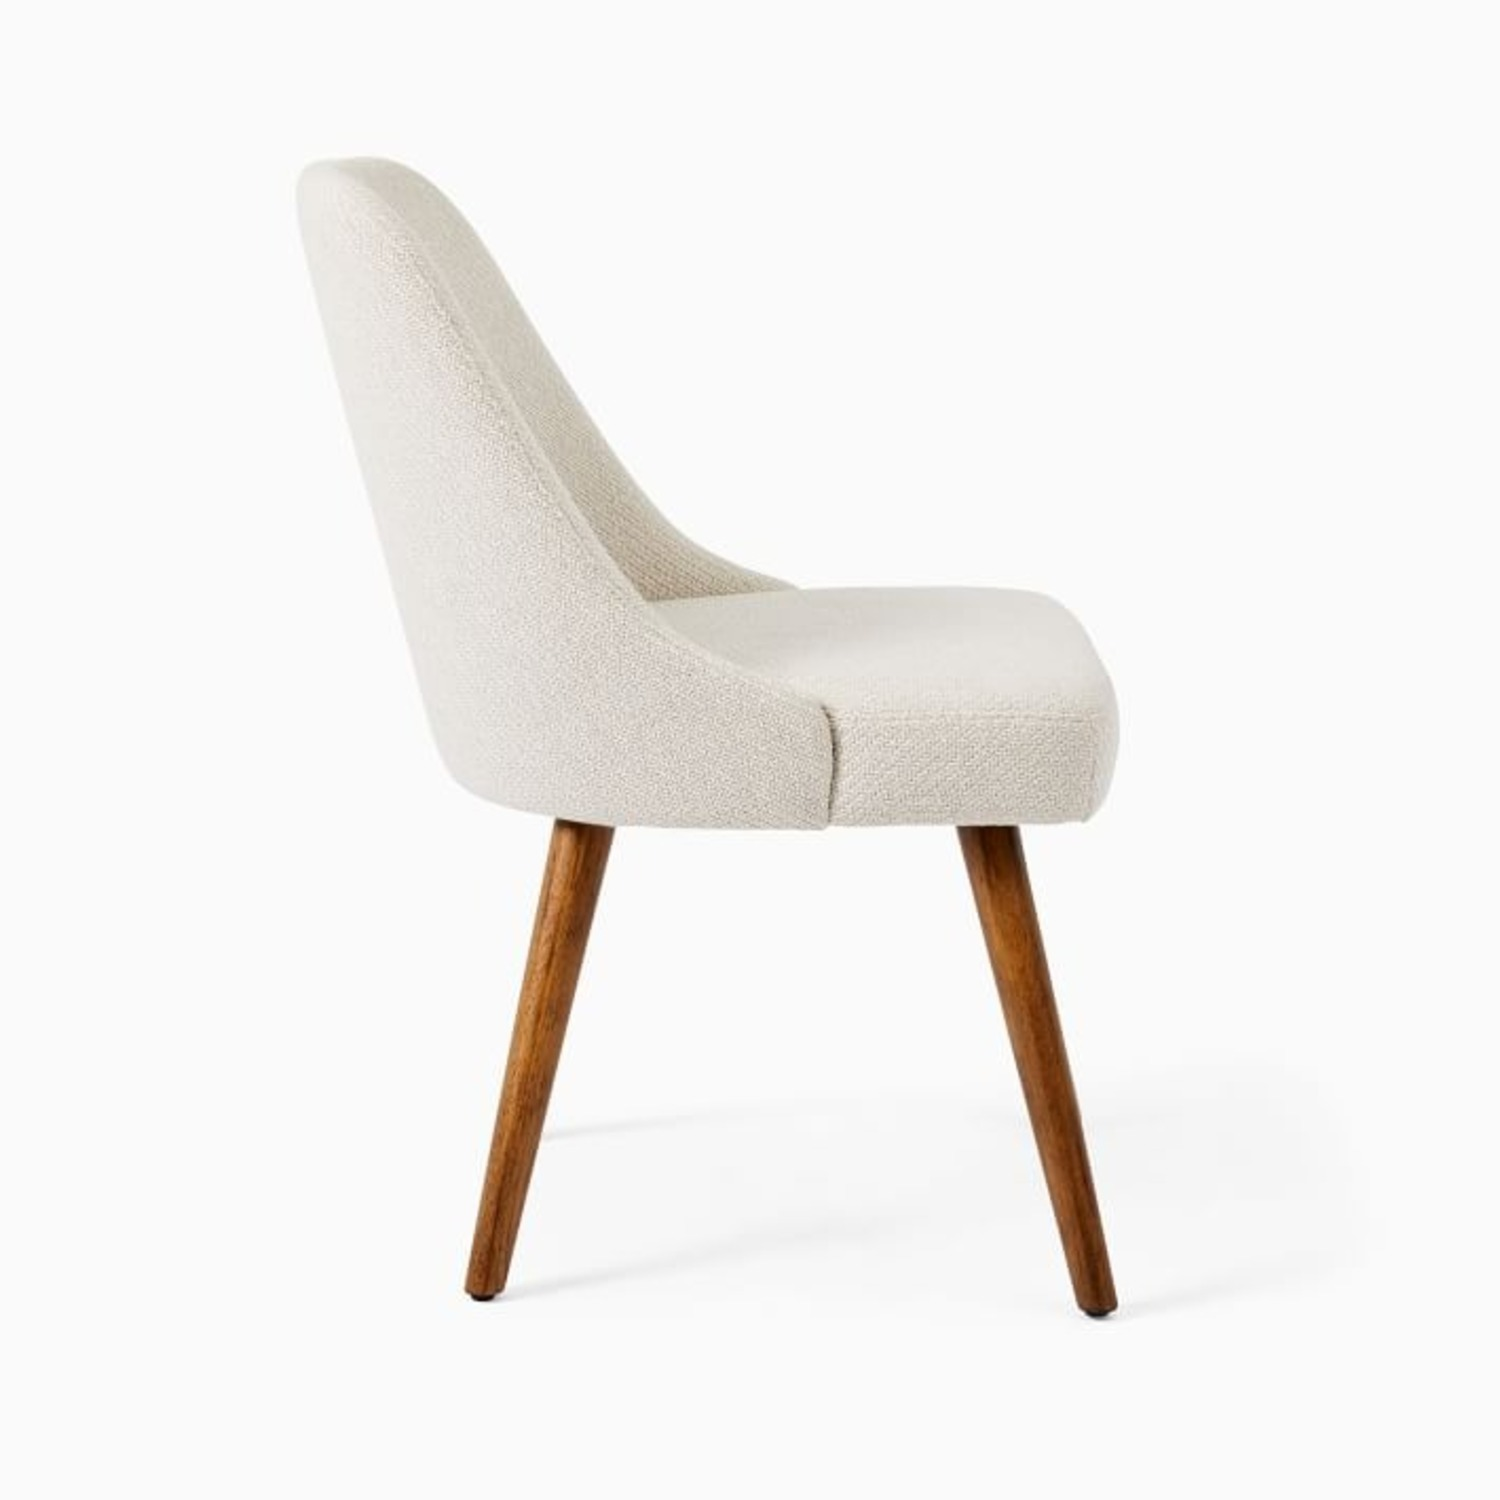 West Elm Mid Century Upholstered Dining Chair - image-1